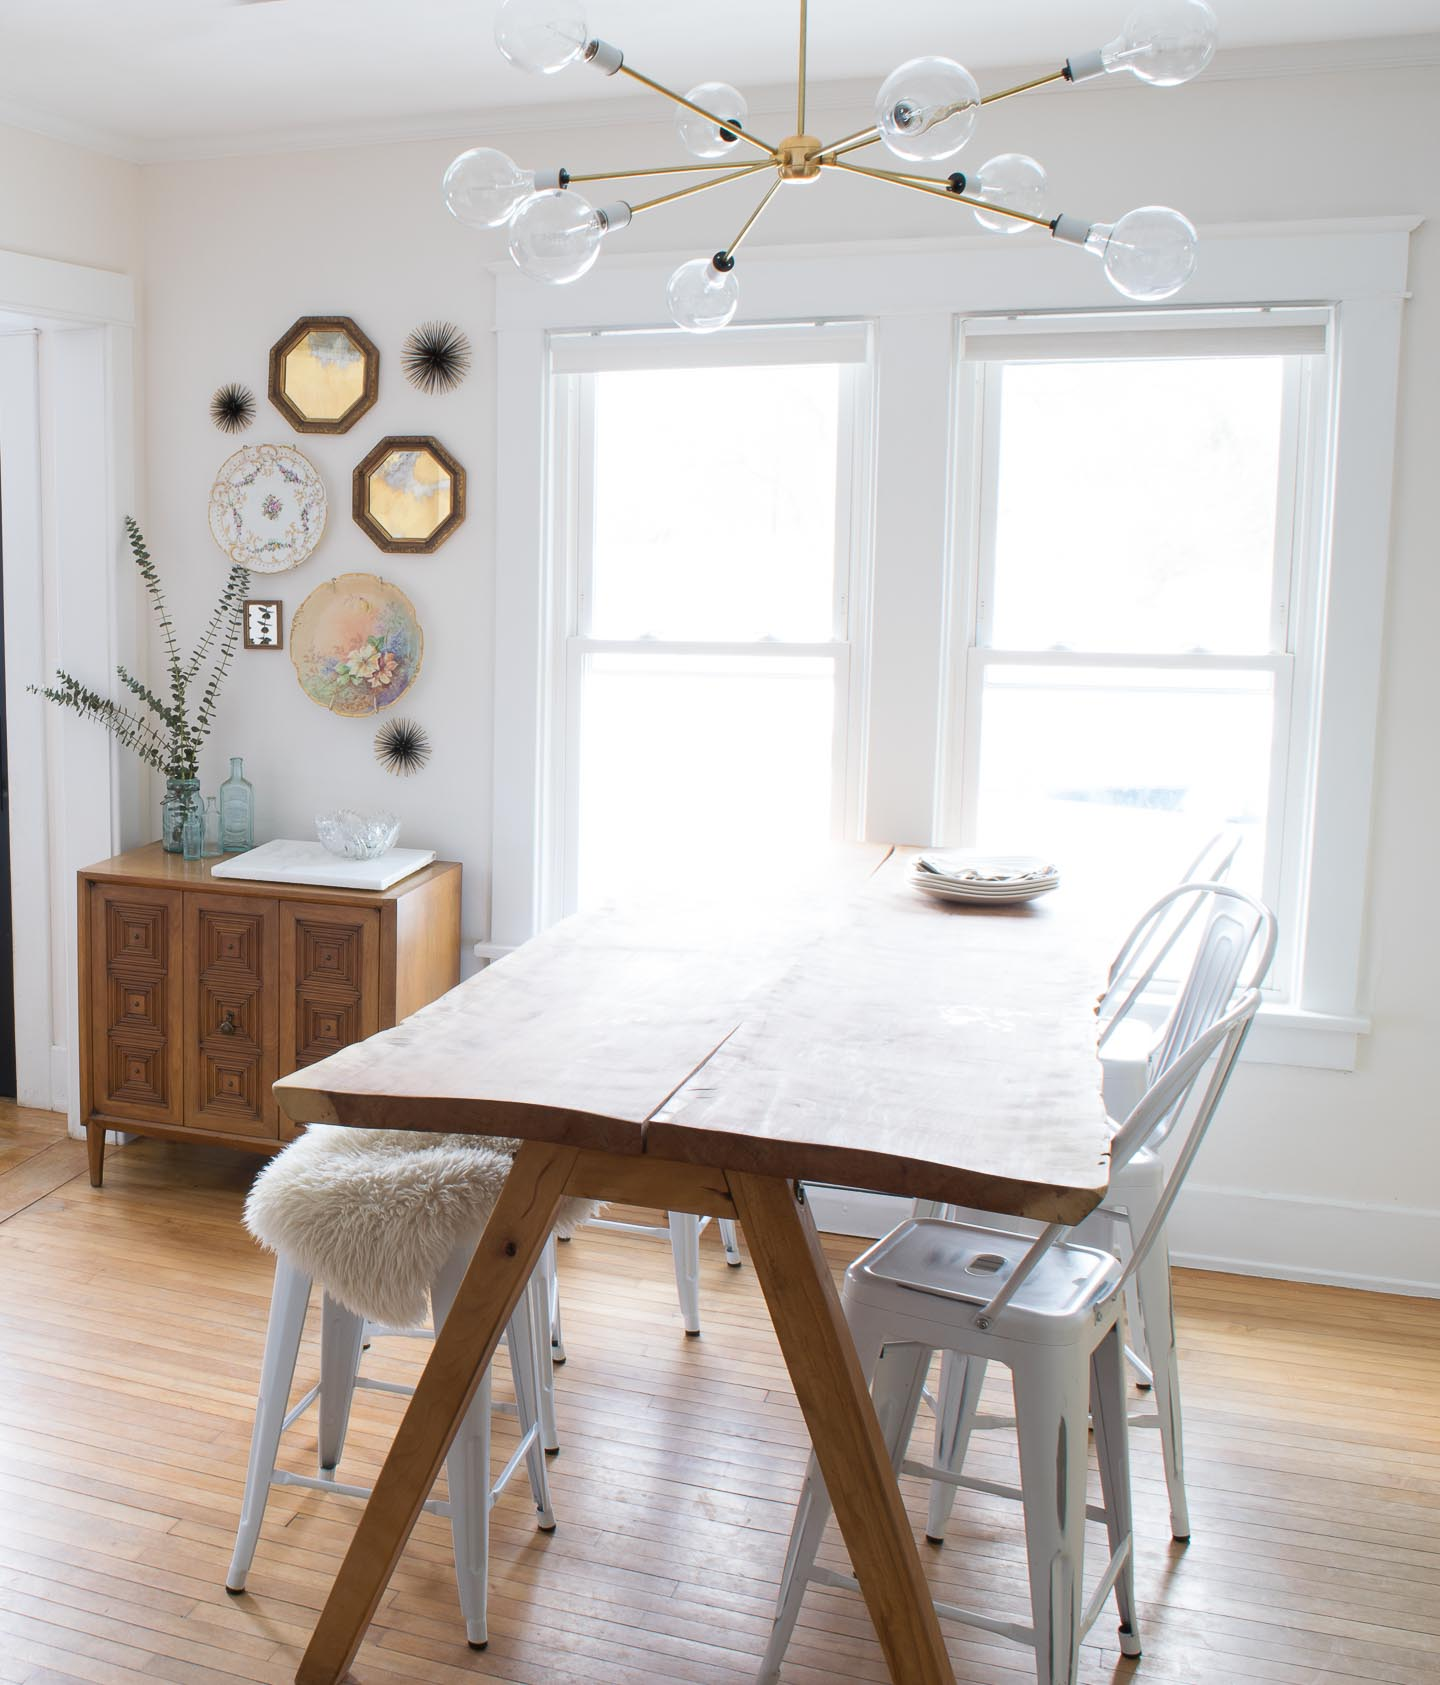 Designing Our Ideal Dining Room : The Full Refresh